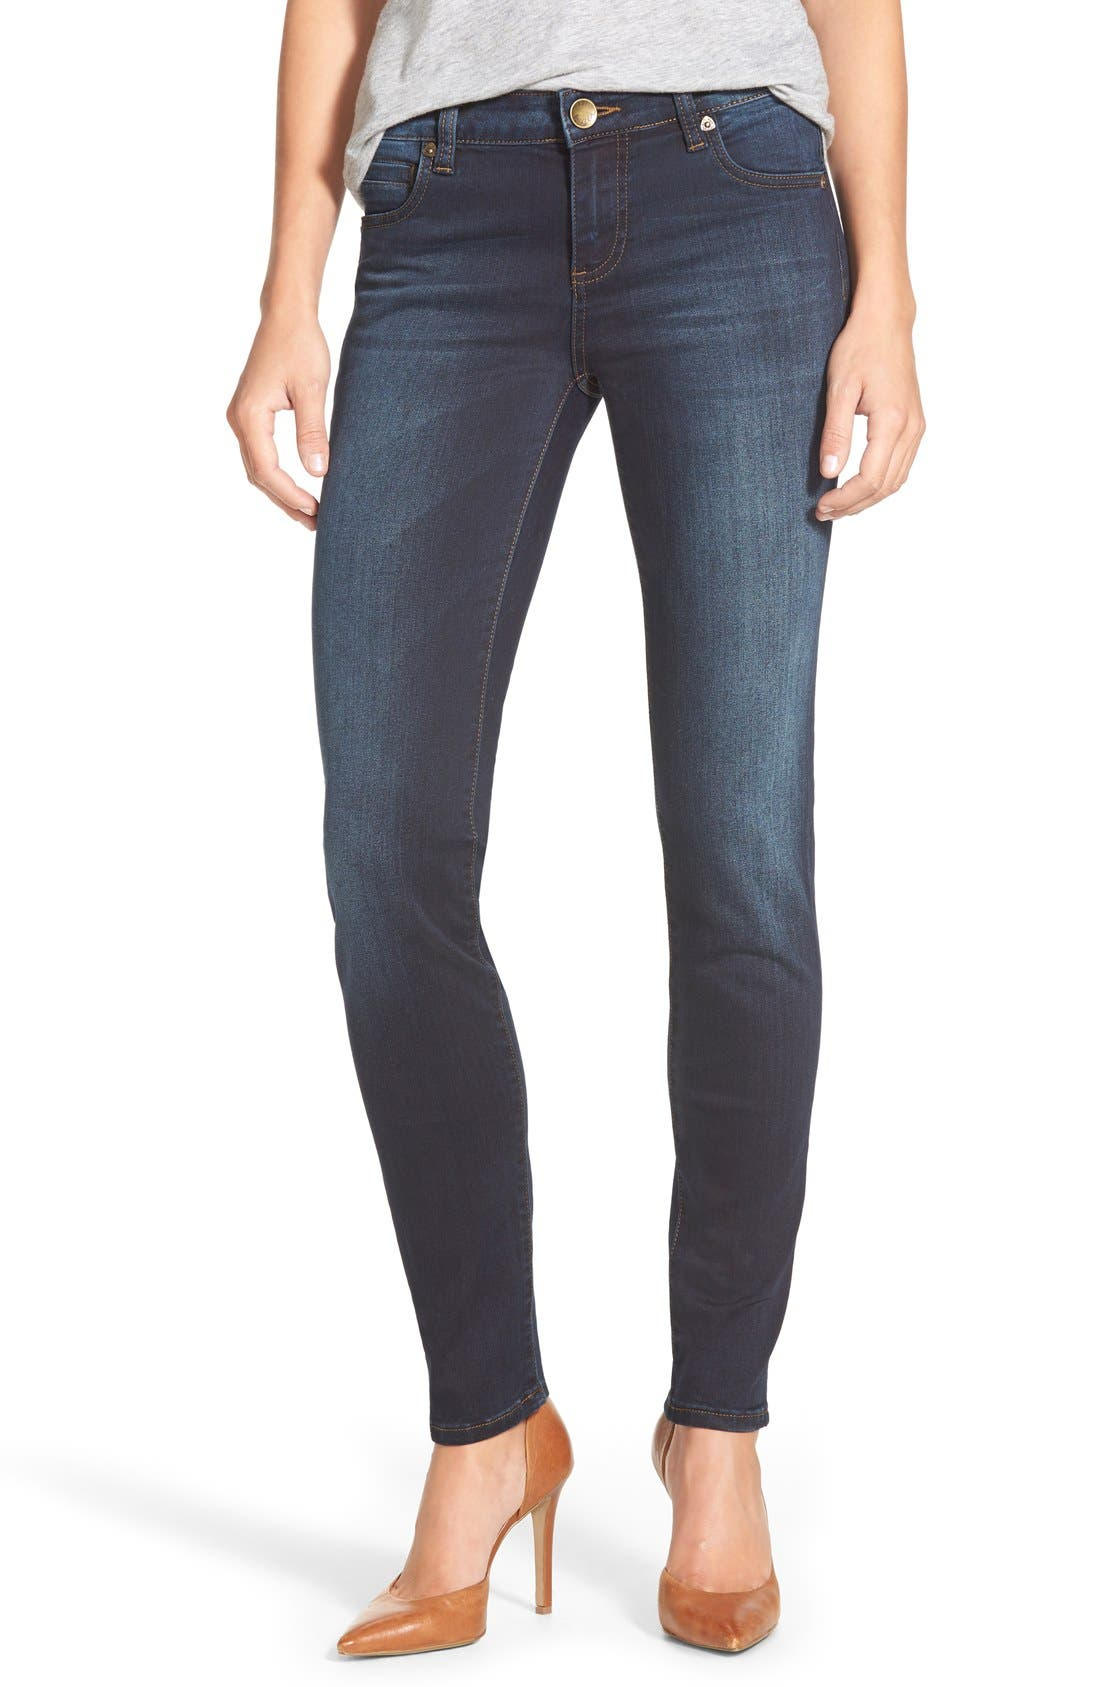 'Diana' Stretch Skinny Jeans,                             Main thumbnail 1, color,                             400